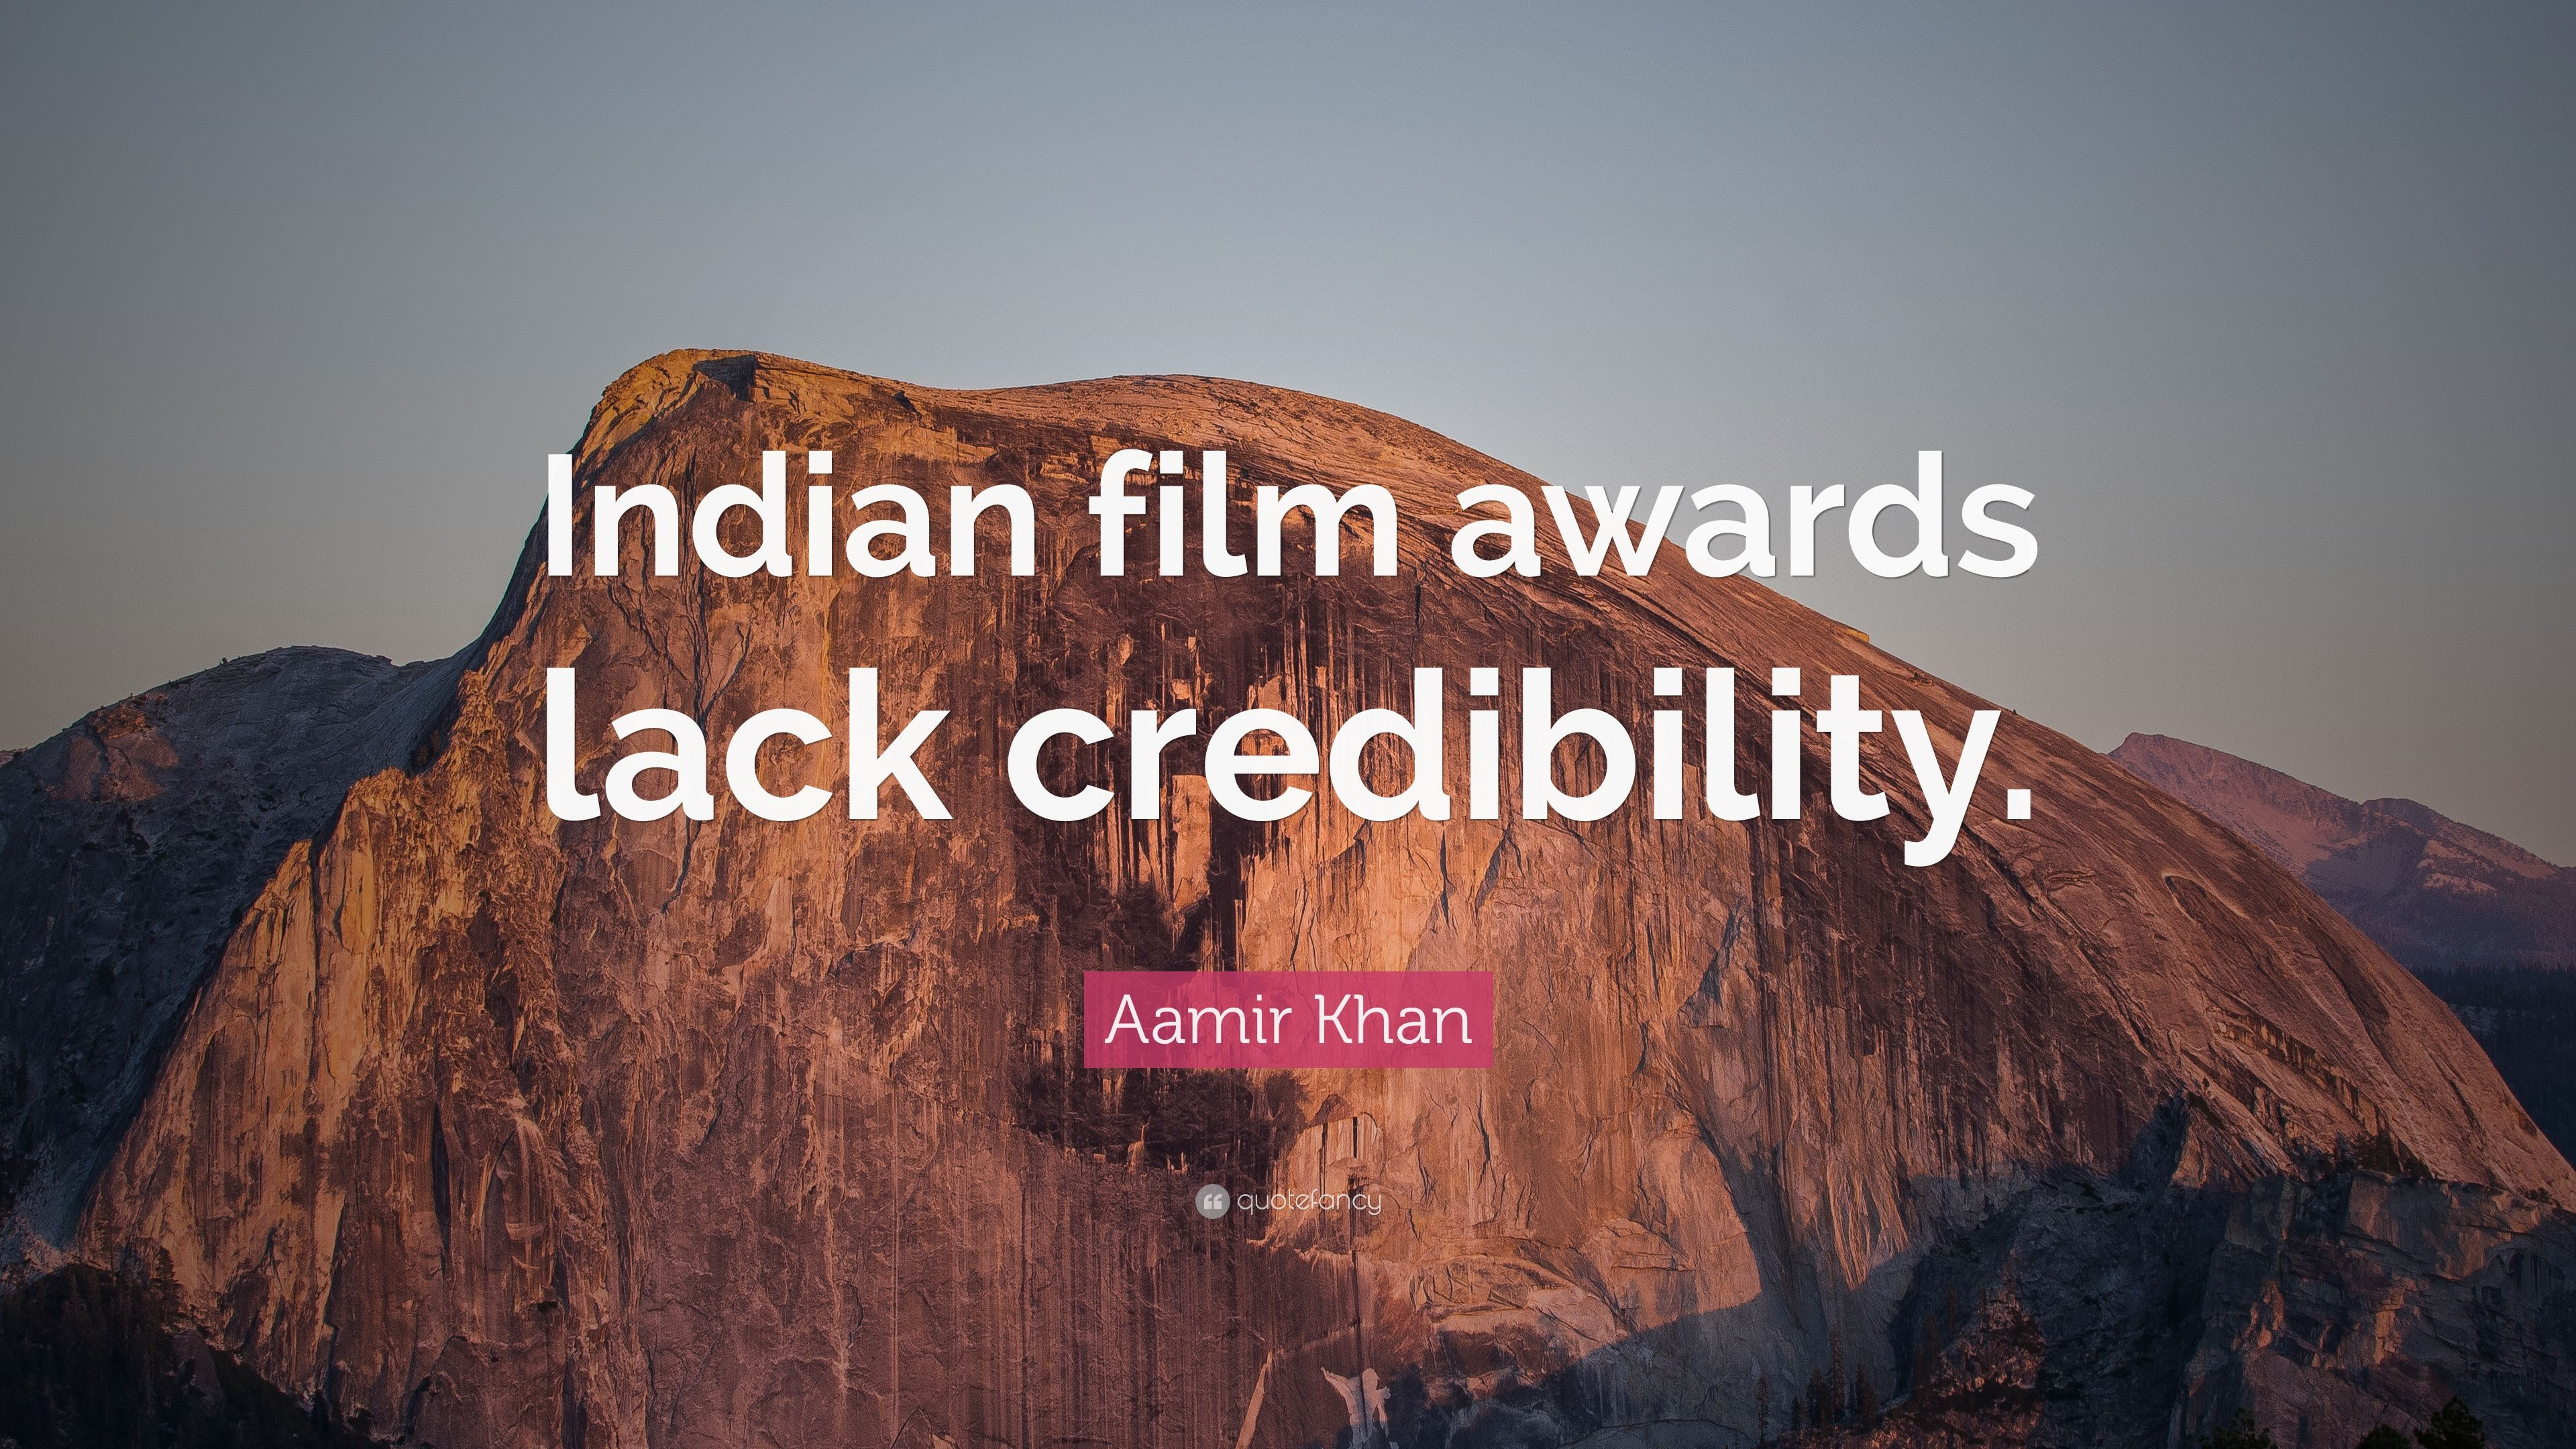 """Aamir Khan Quote: """"Indian film awards lack credibility """" (7"""